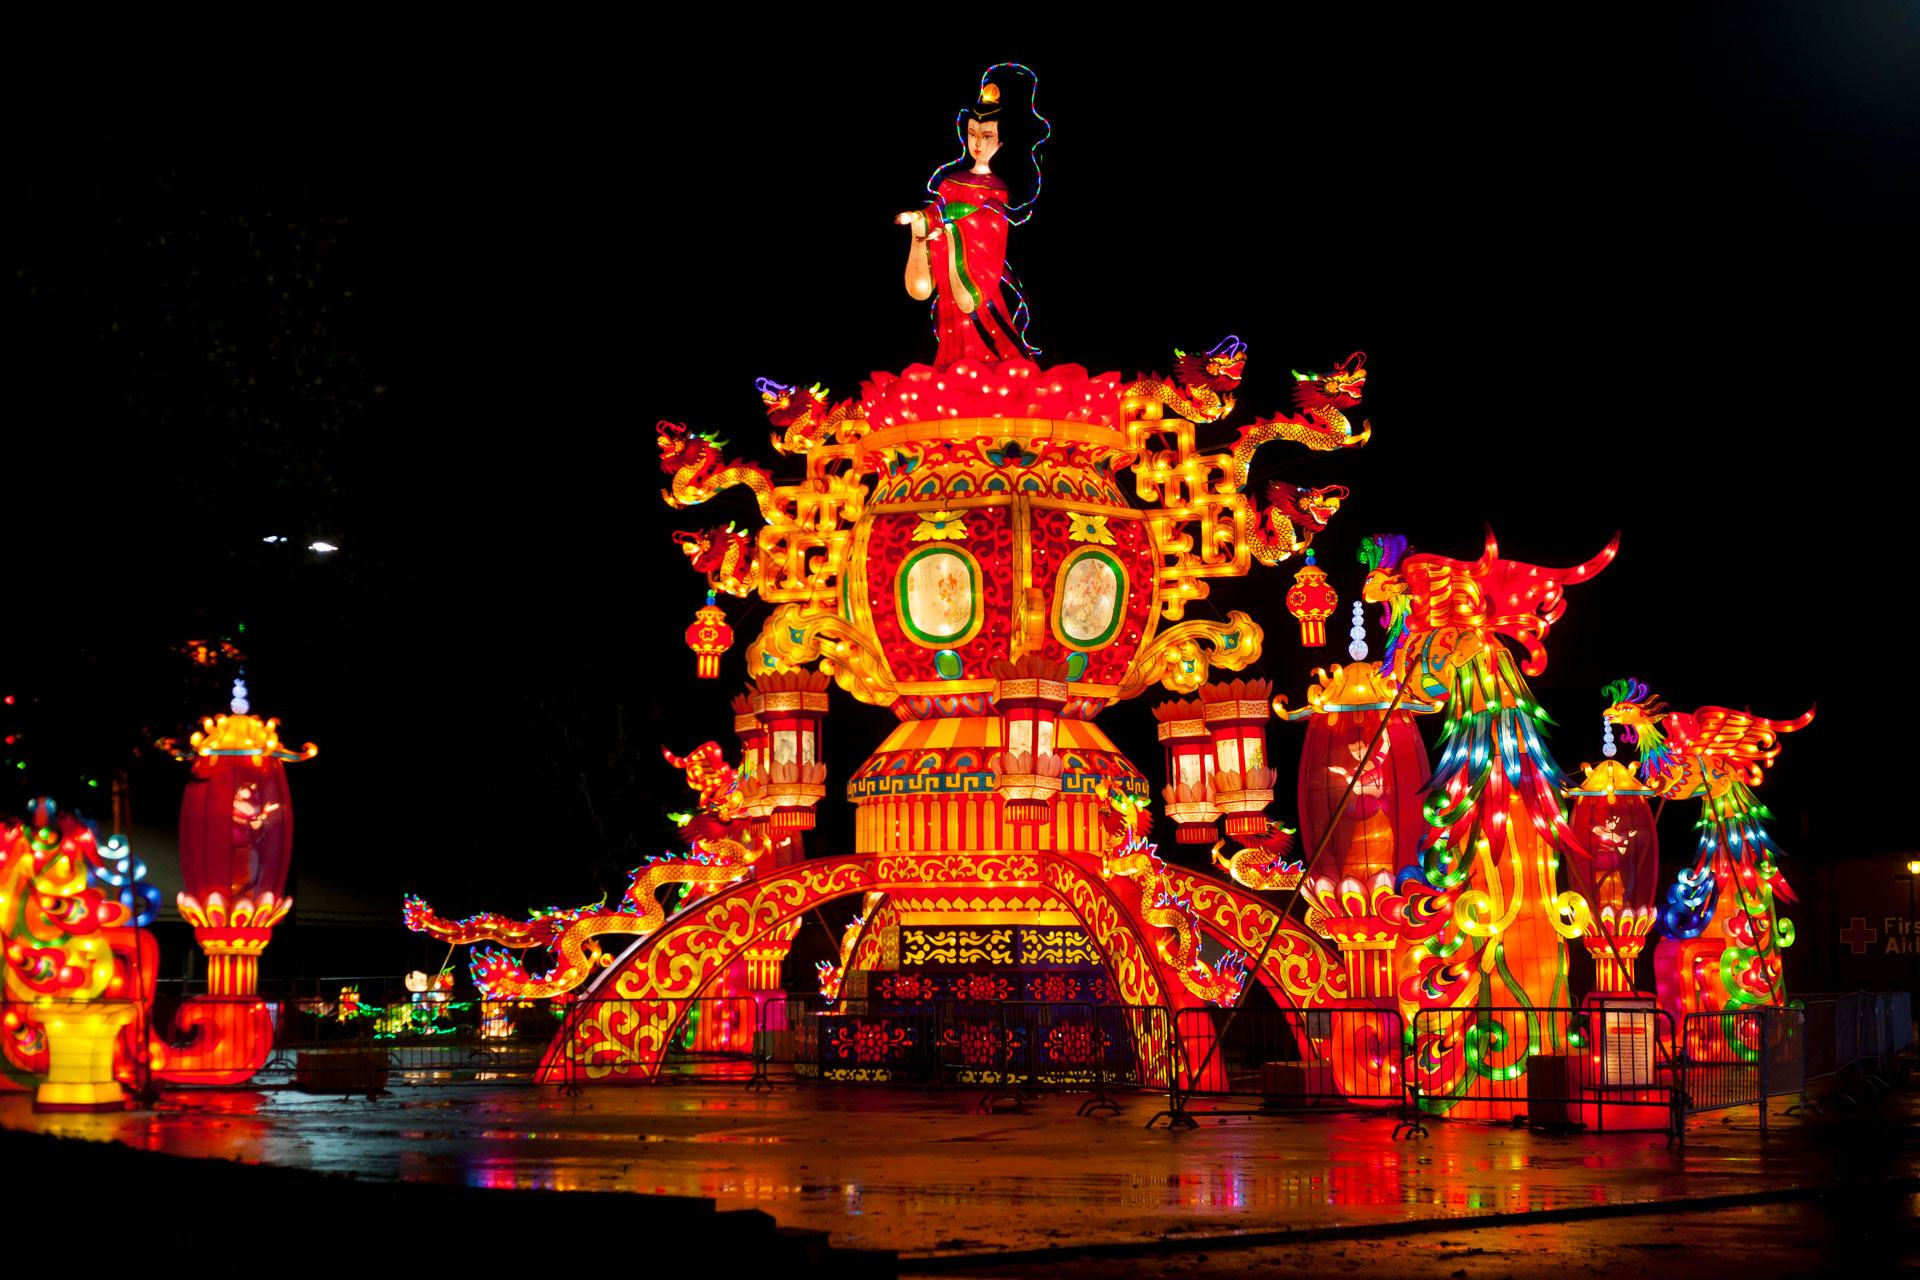 the ohio state chinese lantern festival kicks off this weekend